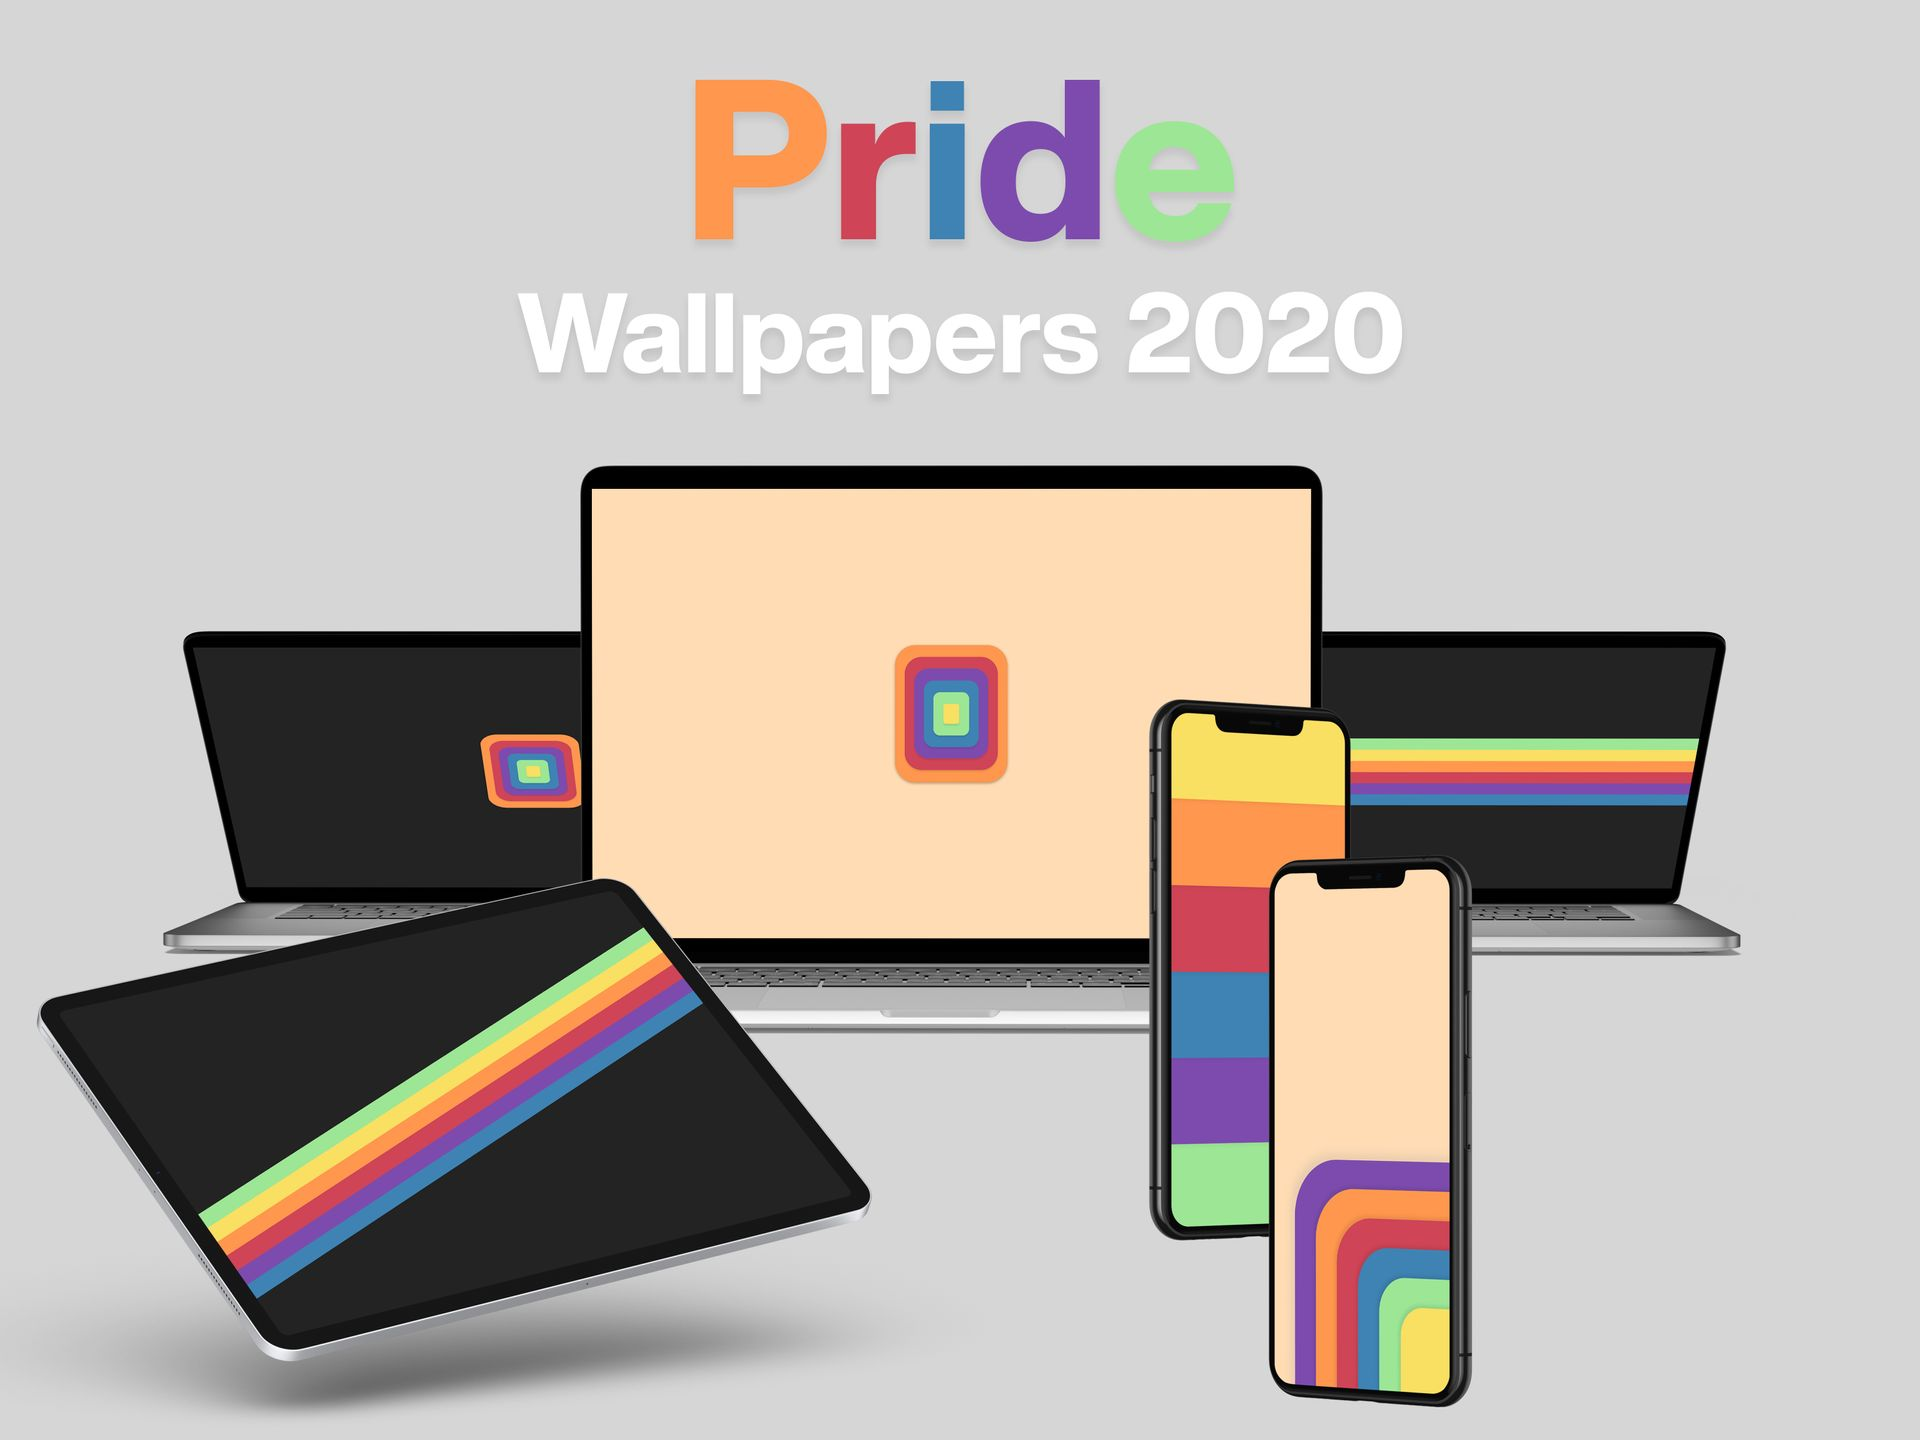 Pride Wallpapers 2020